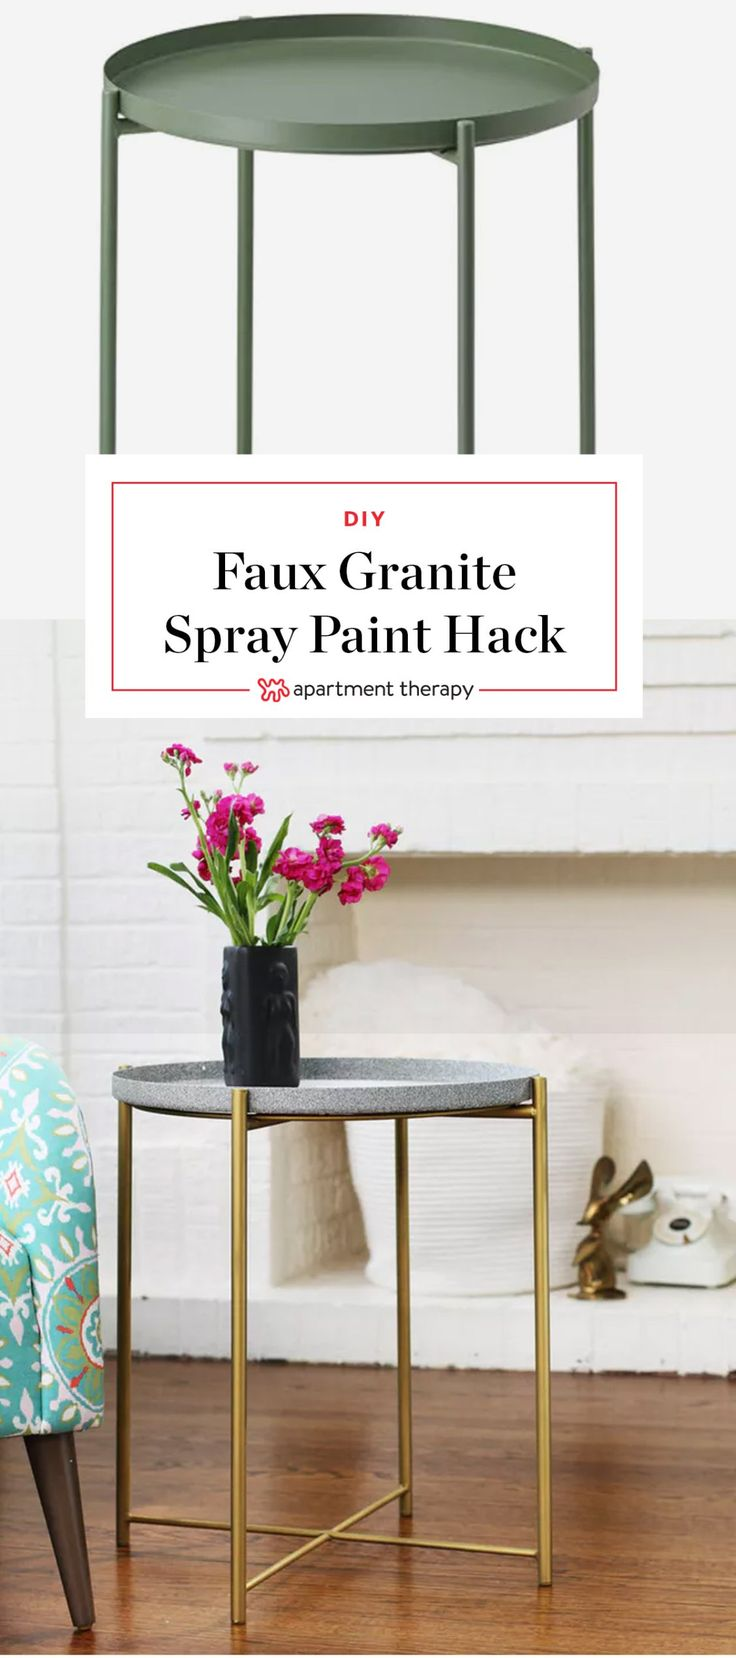 A $30 IKEA Table Gets a Glamorous Spray Paint Hack   Textured spray paints have come and gone over the years and for the most part, I've been happy to see them go. But I think I finally found one product that I'd like to have stick around for a while — Rust-Oleum's Stone Creations Spray. I used it to transform this cheap metal IKEA table into a granite and brass look-a-like.